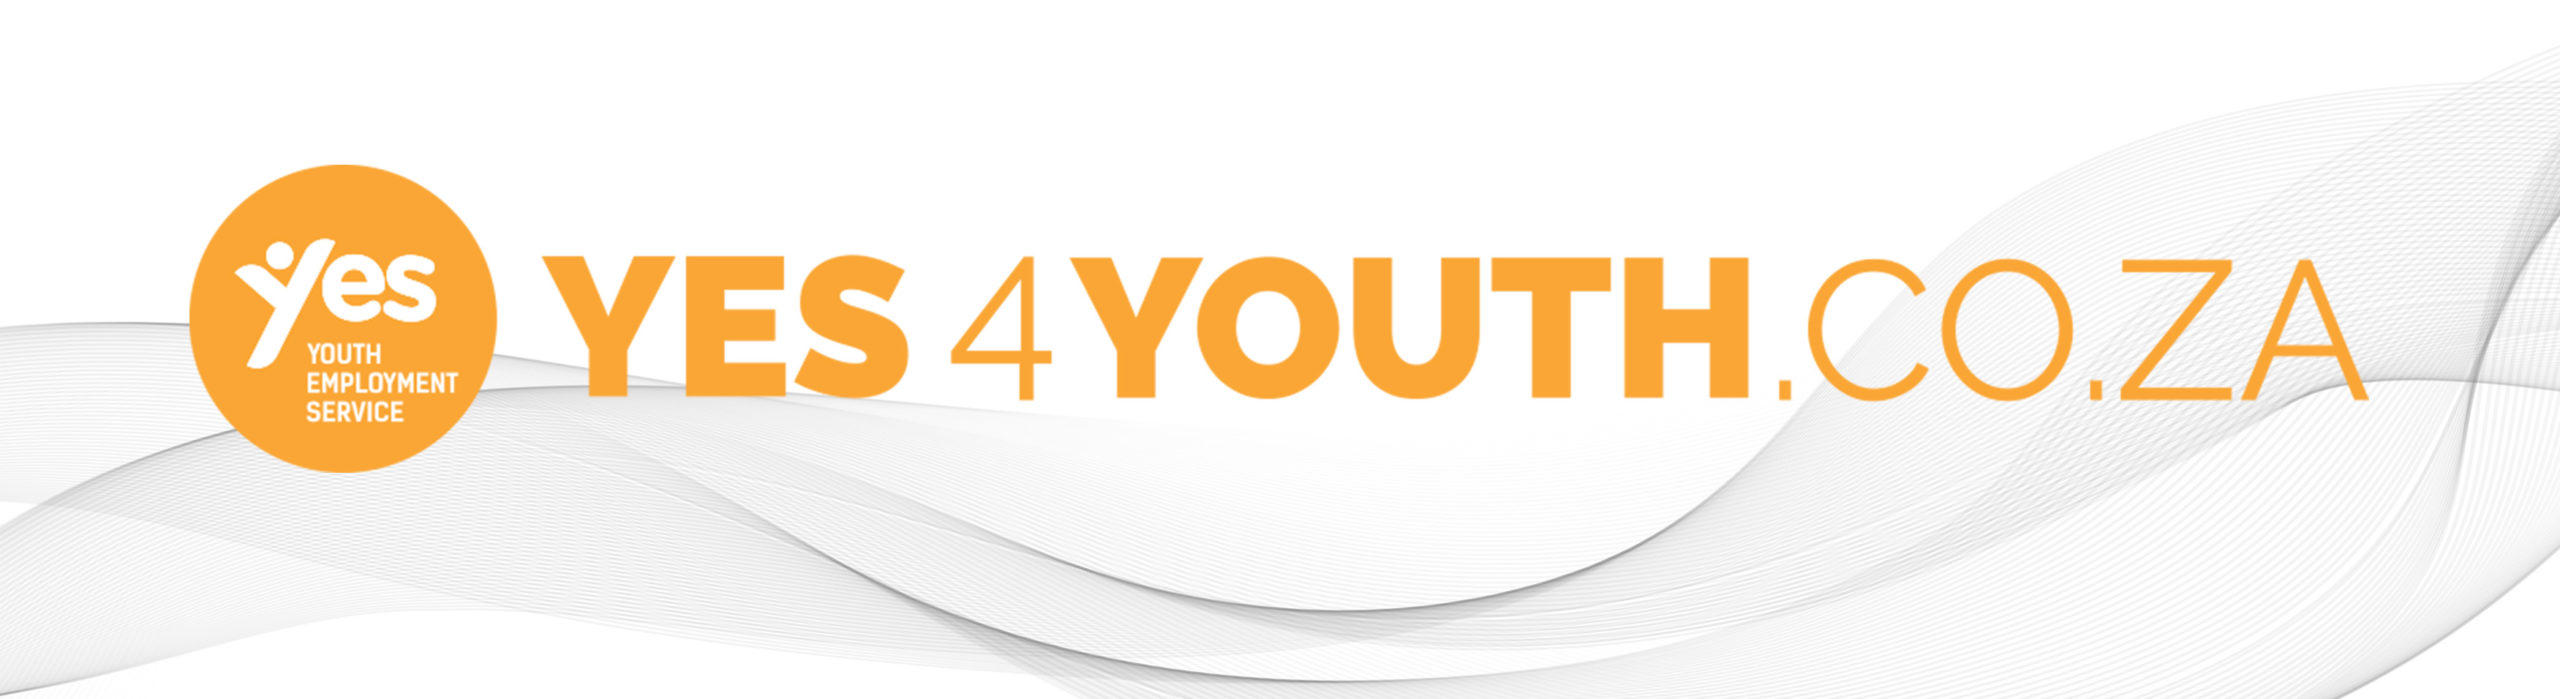 YES4YOUTH2